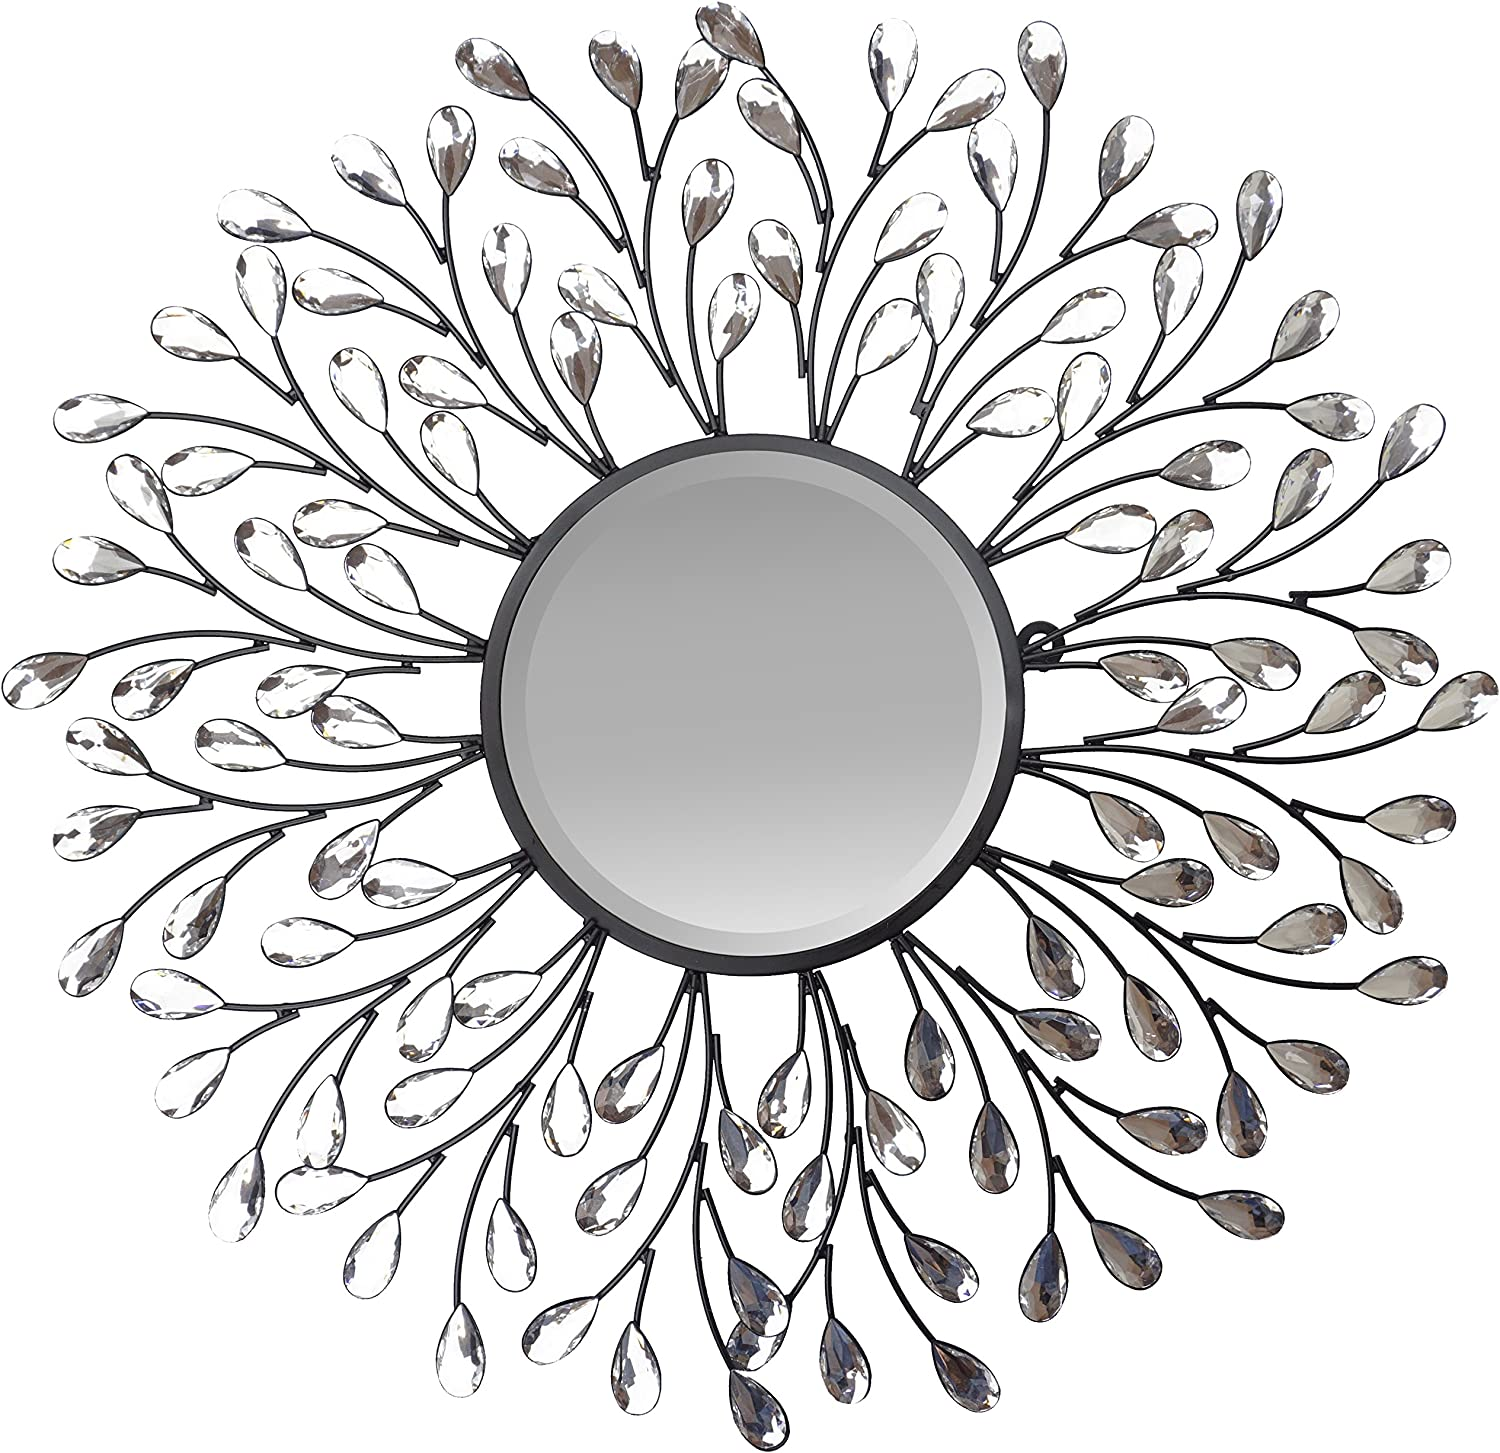 "Lulu Decor, Decorative Crystal Metal Vine Wall Mirror, Beveled Mirror, Frame Measures 24"", Mirror Measures 11"", Perfect for Housewarming Gift (L72MC)"